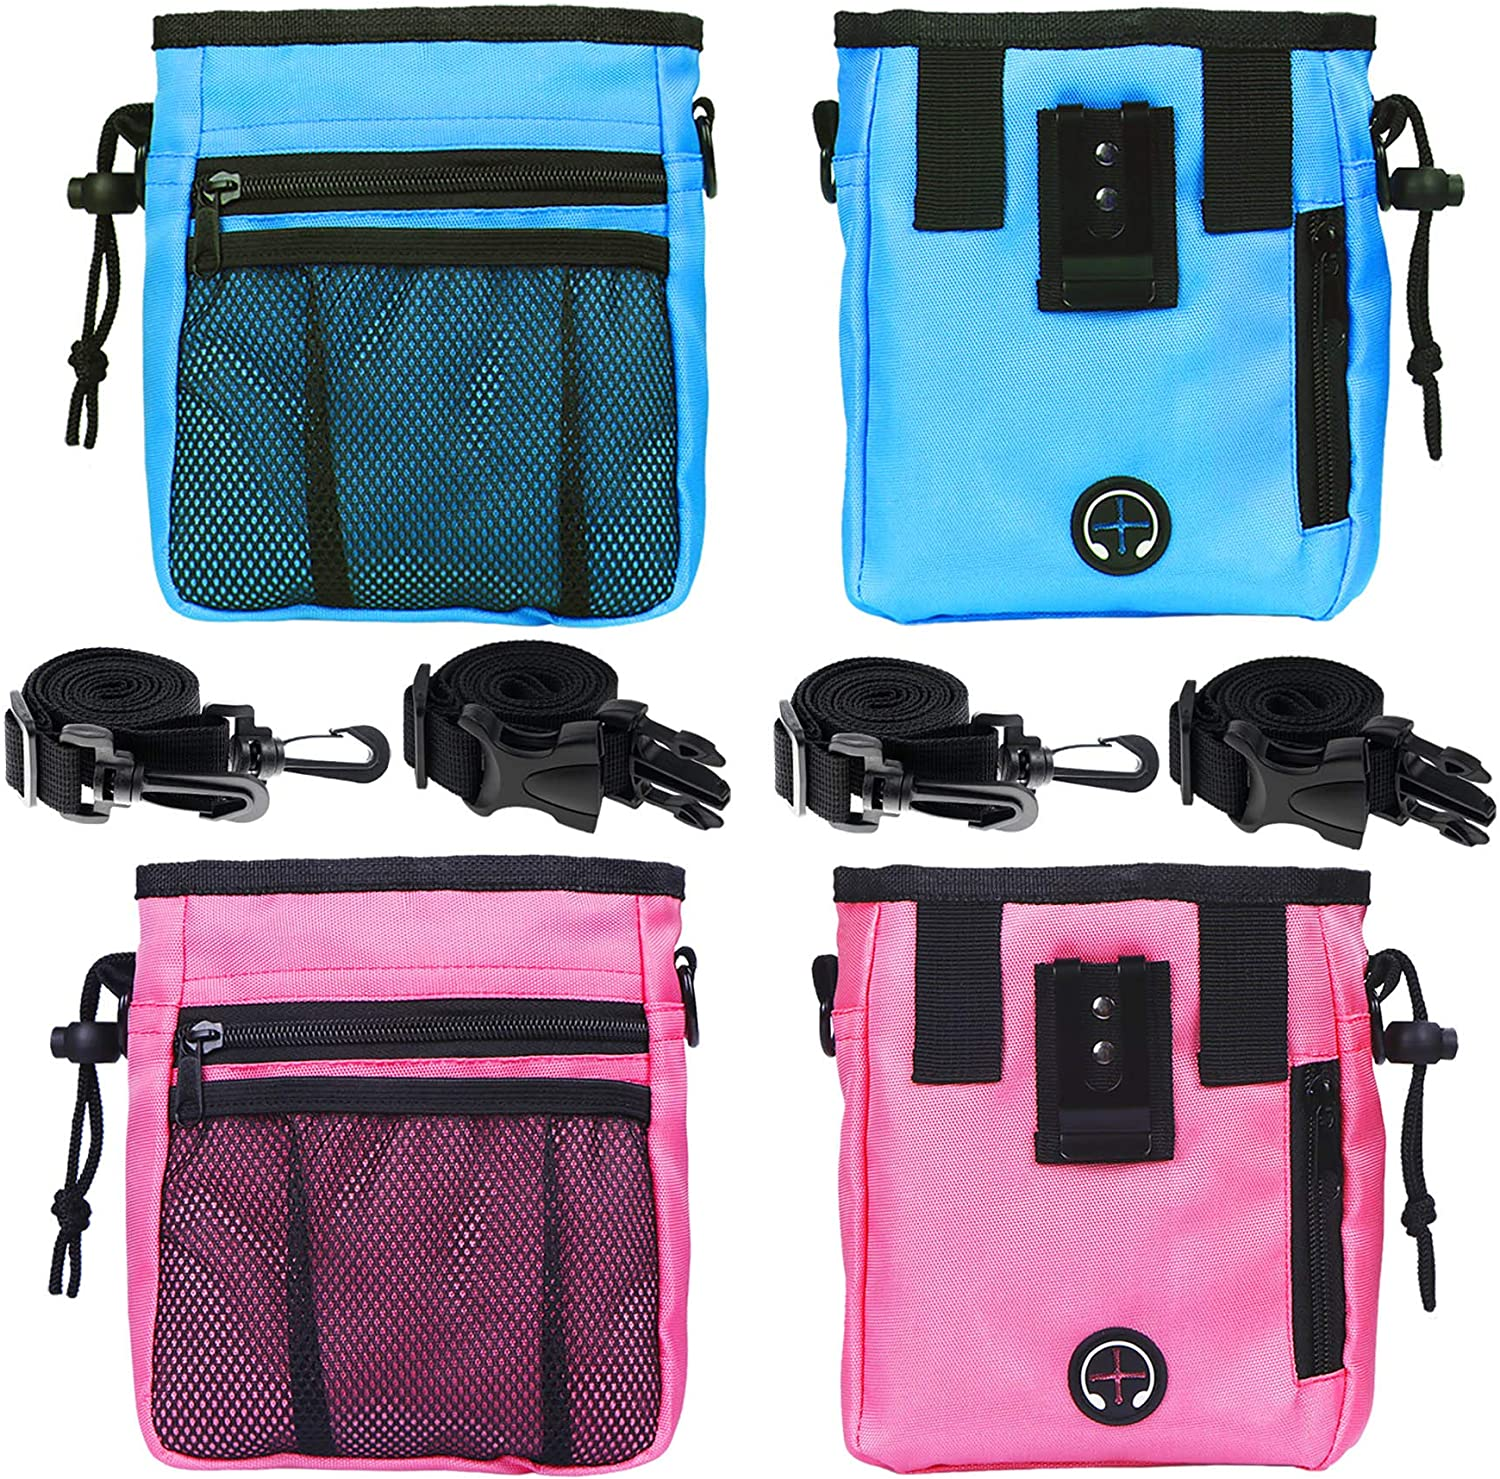 STMK 2 Pack Dog Treat Pouch, Dog Training Treat Pouch with Waist Shoulder Strap, 3 Ways to Wear, Easily Carries Dog Toys, Kibble, Treats, Ideal for Dog Walking, Dog Training, Puppy Training